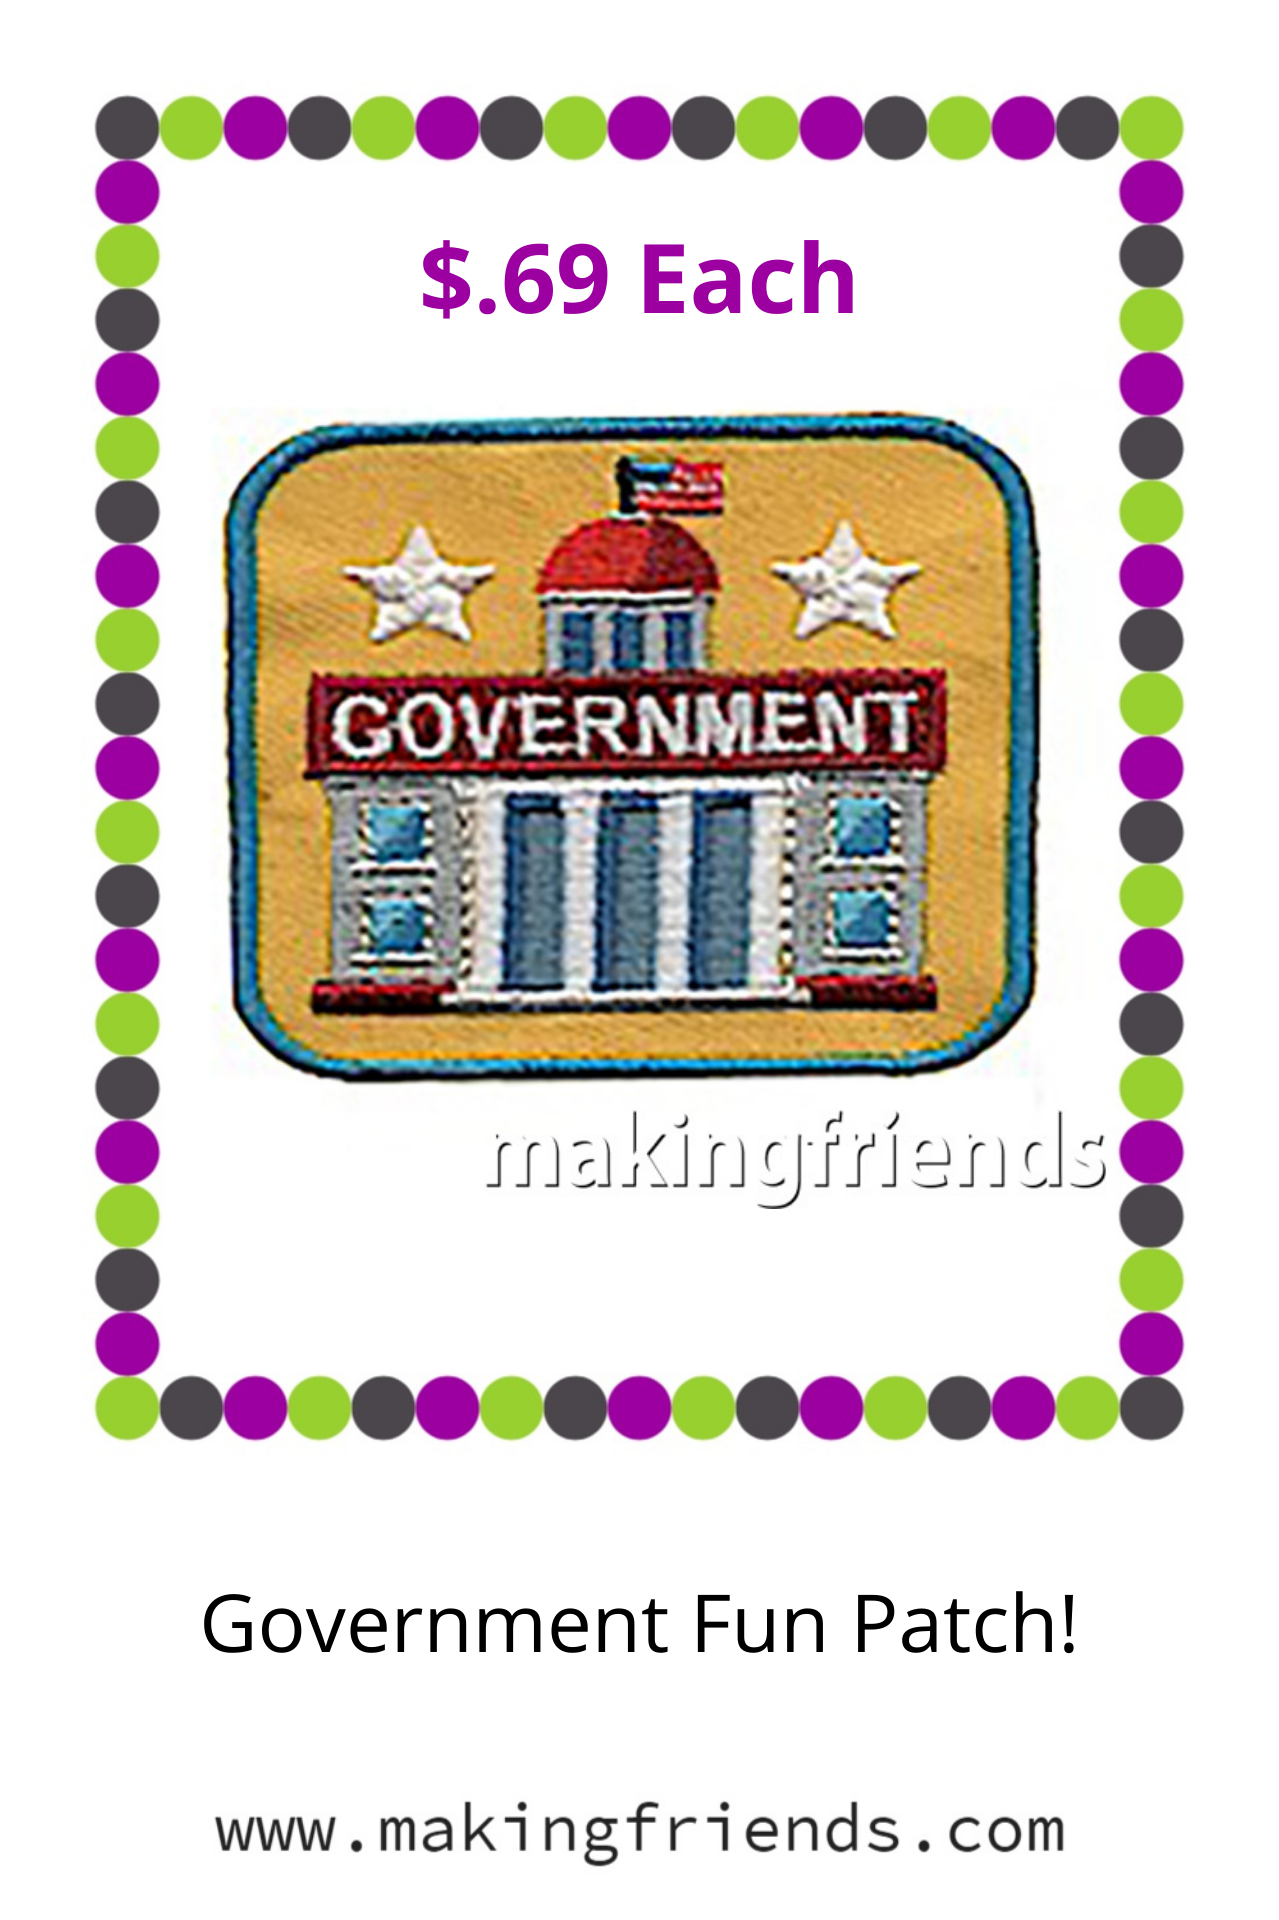 Remember your troop trip or virtual tour to a government office or to meet a representative with this patch from MakingFriends®.com. #makingfriends #government #governmentpatch #gsfunpatch #girlscoutpatches #boyscouts #boyscoutpatches #scouts #scoutpatches #elections via @gsleader411